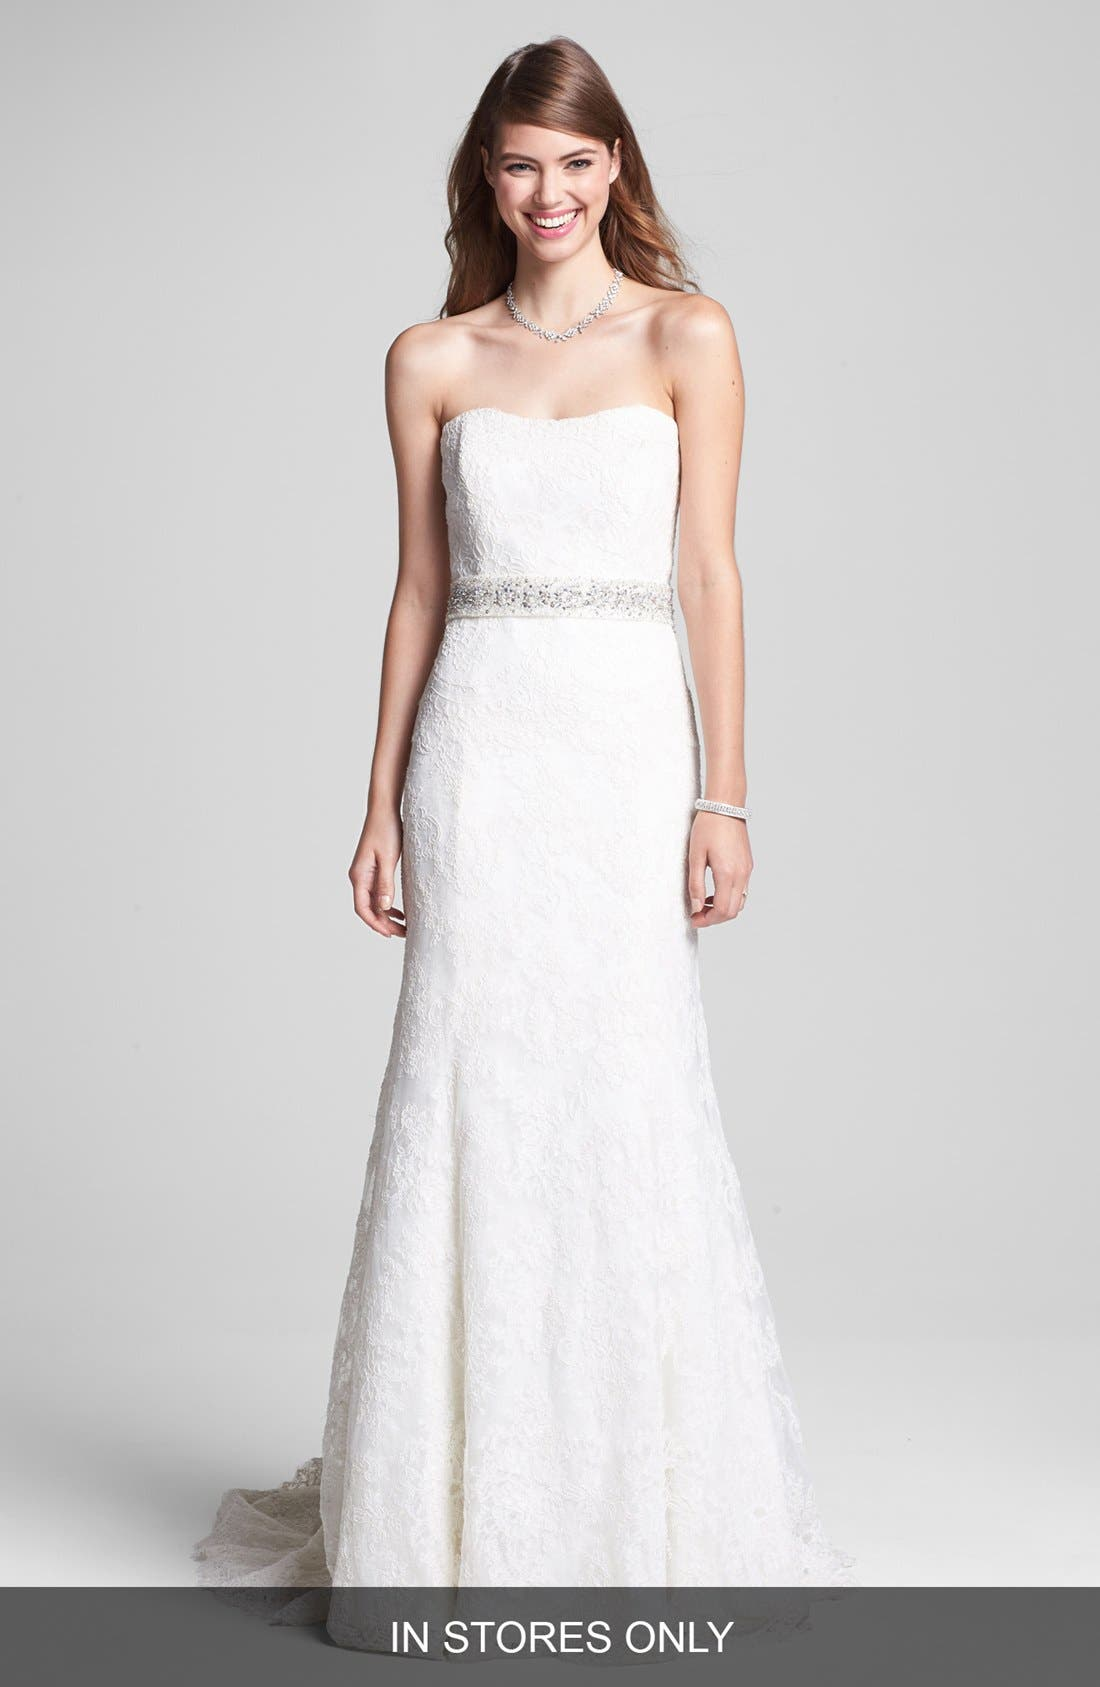 BLISS MONIQUE LHUILLIER Strapless Lace Wedding Dress with